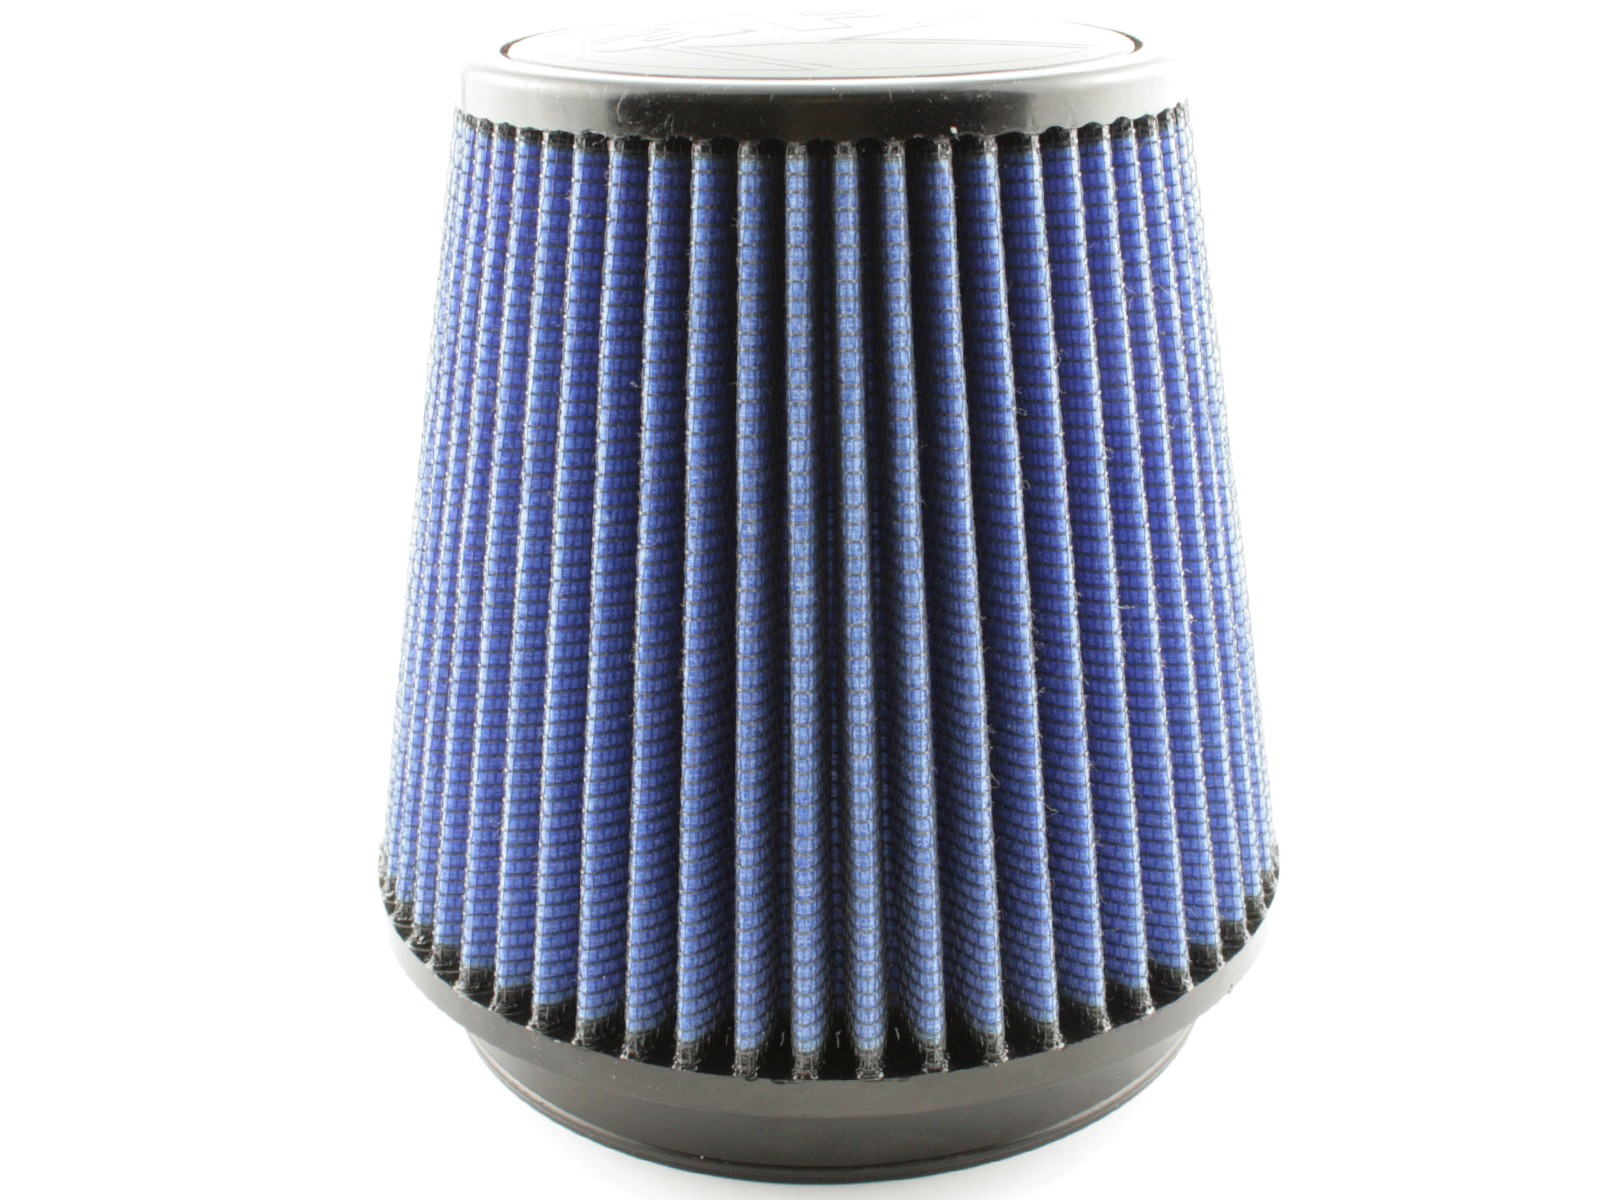 aFe POWER 24-60507 Magnum FLOW Pro 5R Air Filter